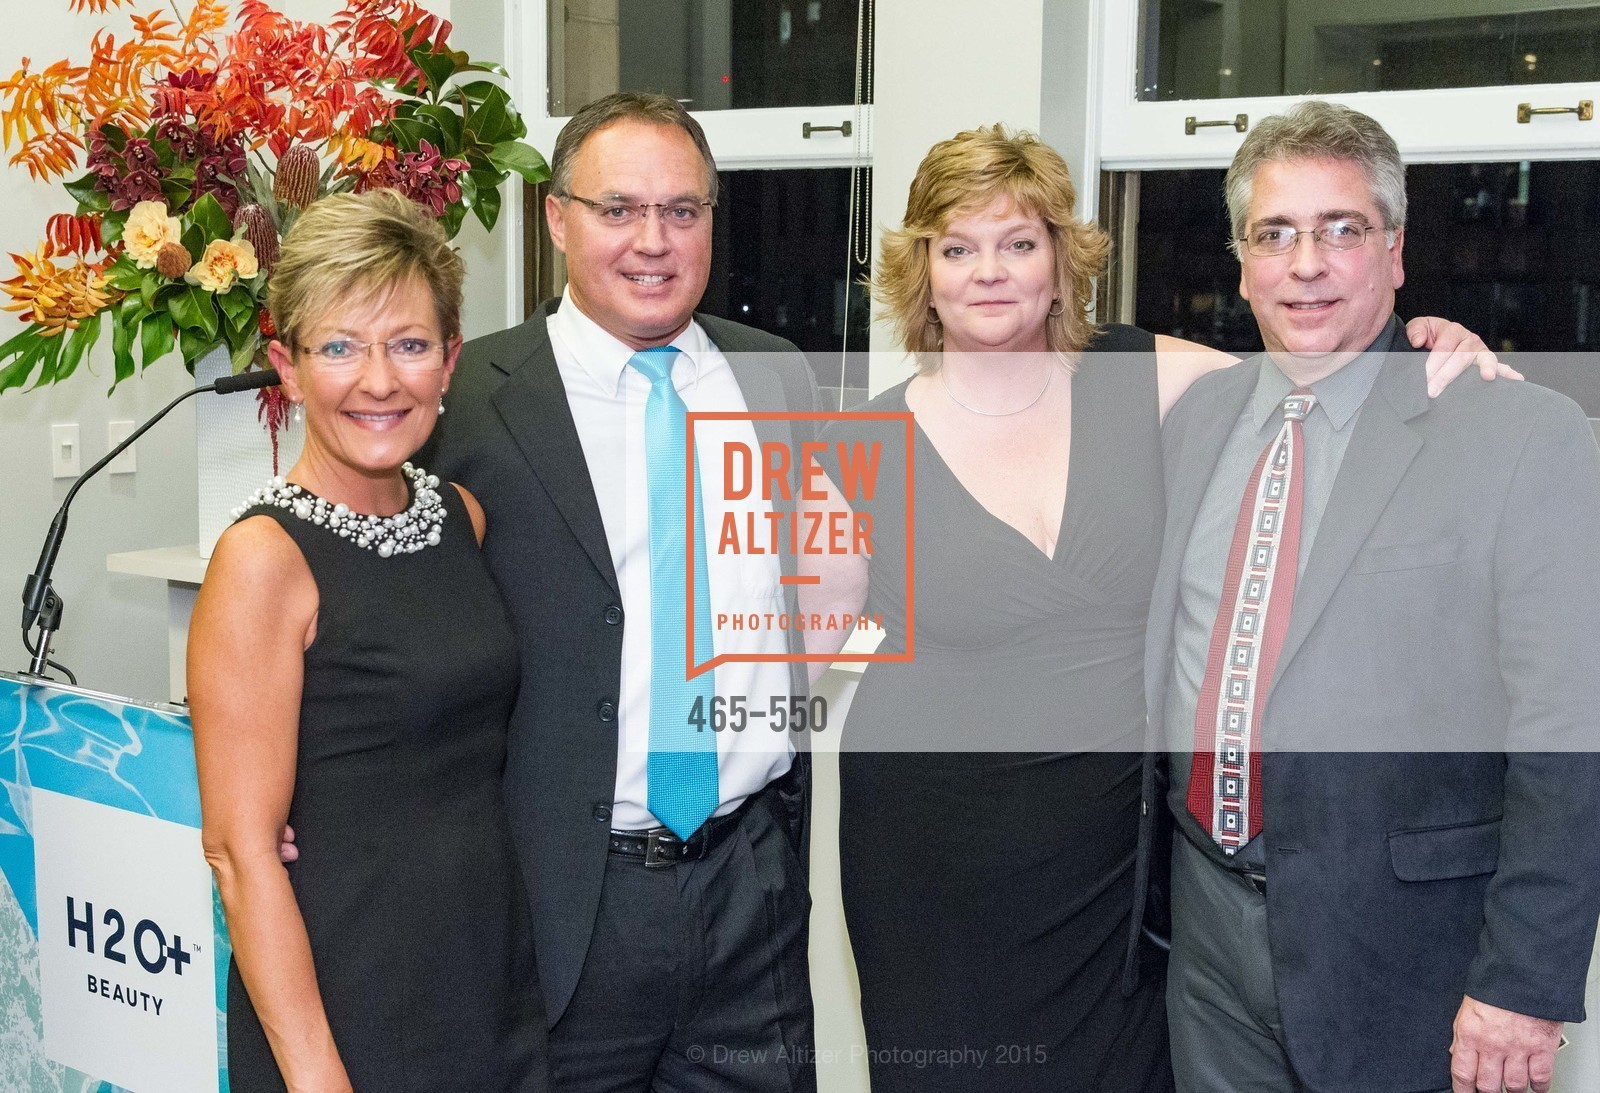 Gina McGlone, Tom McGlone, Christine Broadbent, Eric Landa, H2O+ World Headquarters Opening: A New Beauty for the Bay, 111 Sutter St. 111 Sutter Street, 22nd Floor, November 18th, 2015,Drew Altizer, Drew Altizer Photography, full-service agency, private events, San Francisco photographer, photographer california